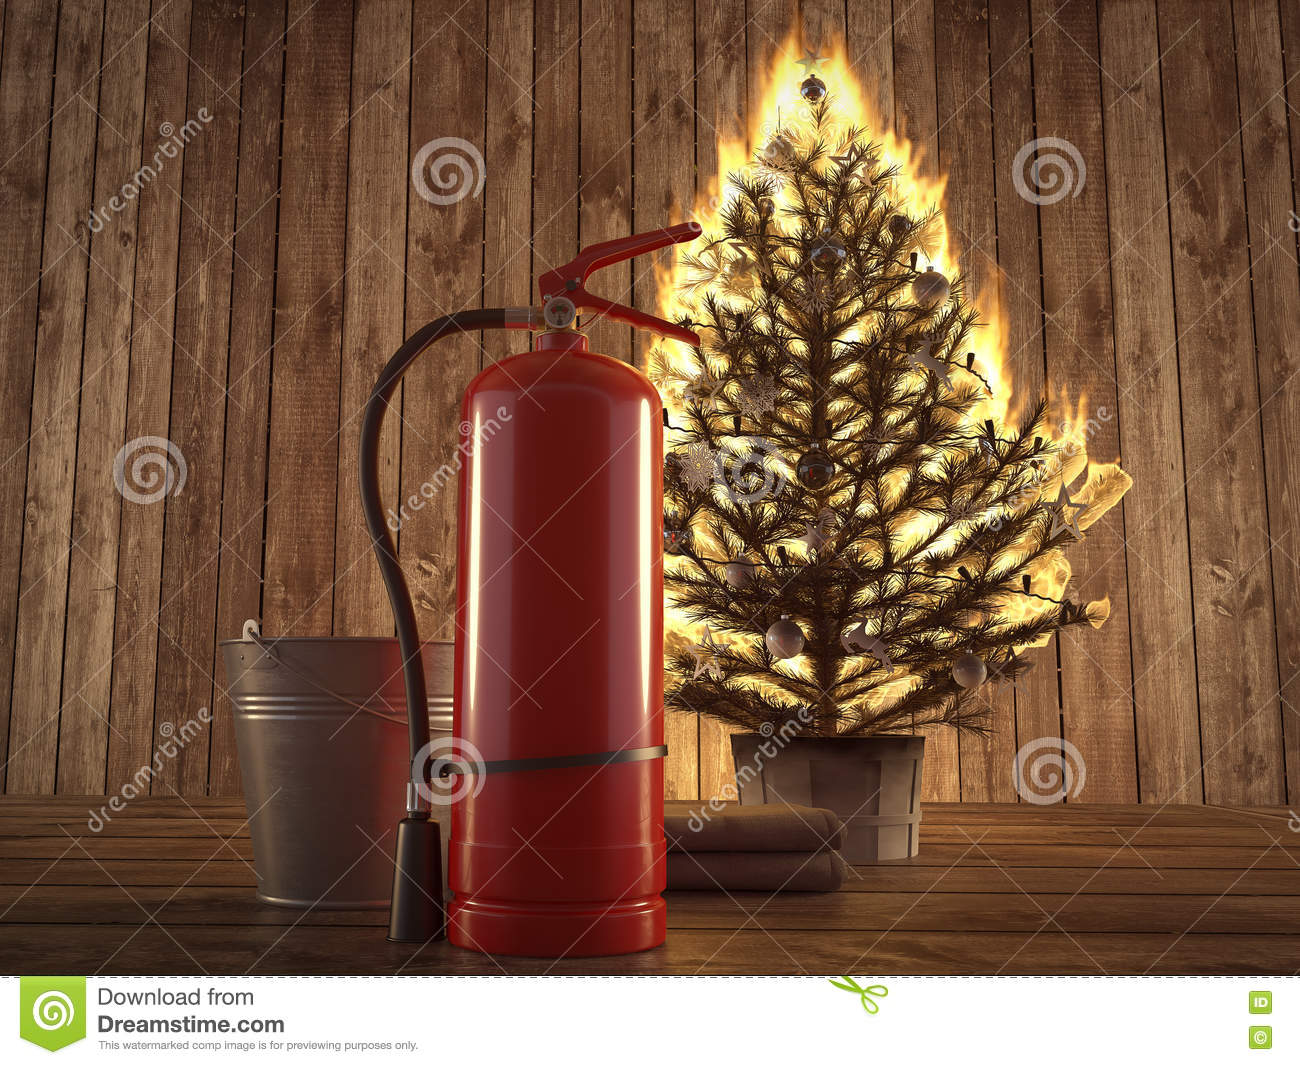 Burning christmas tree with extinguisher and bucket beside d